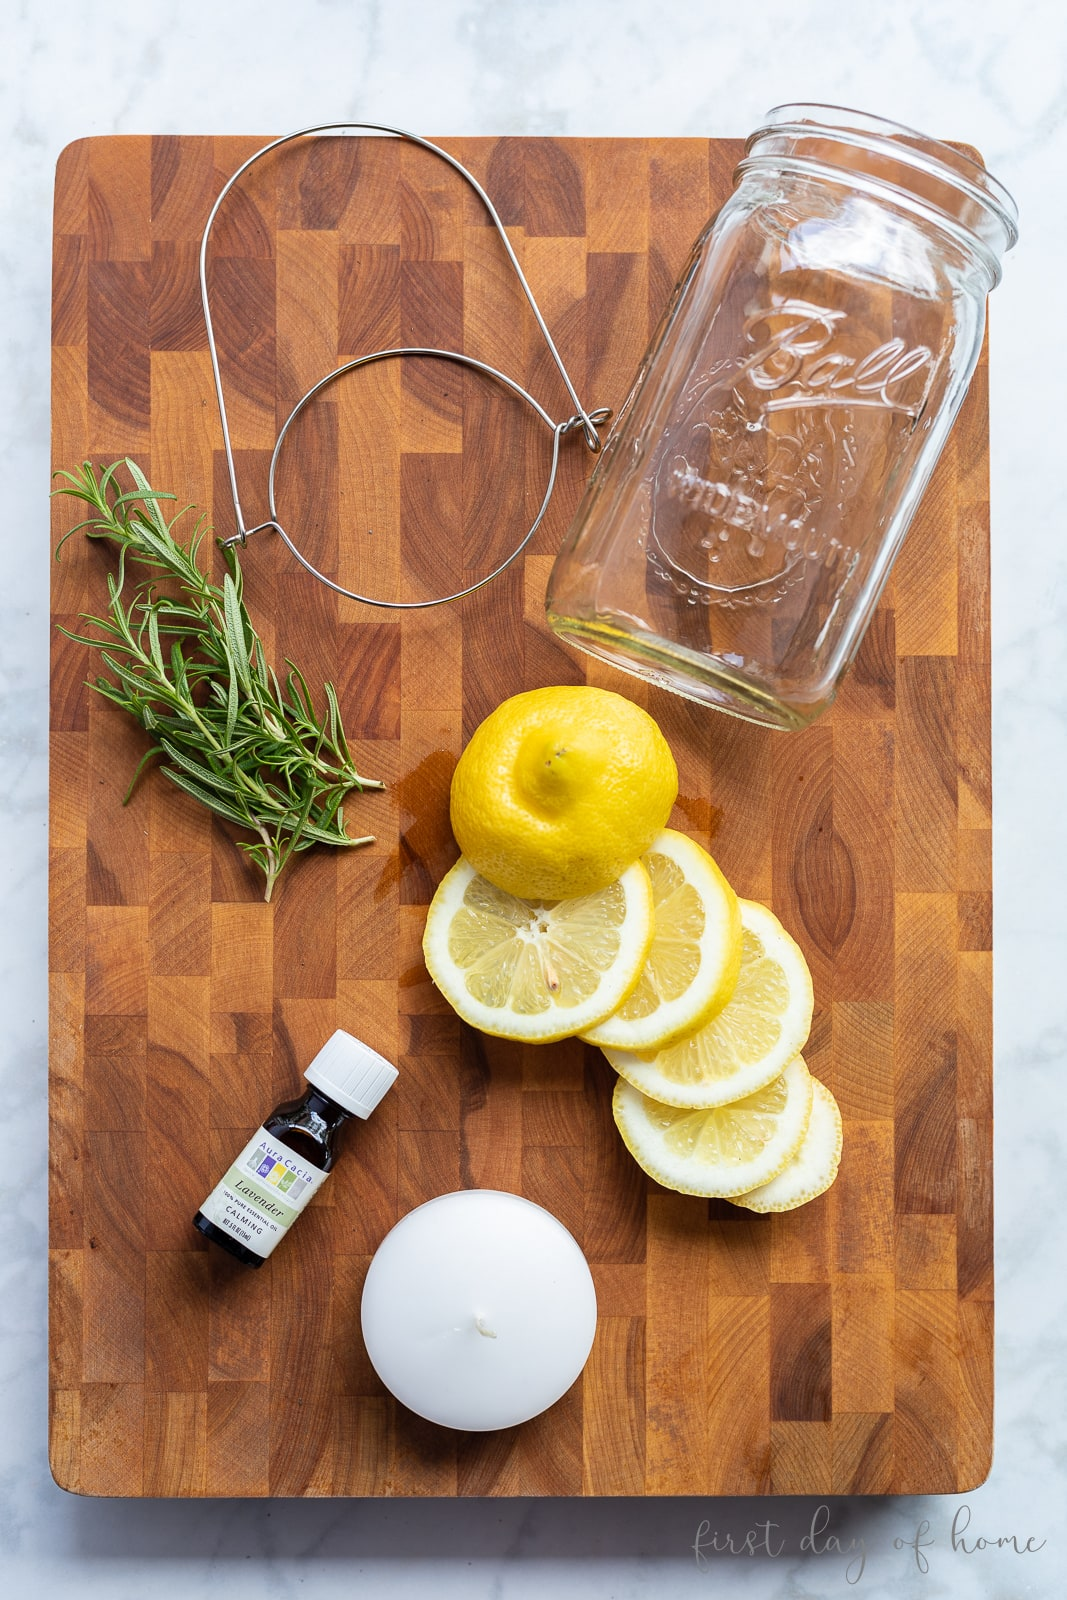 Mason jar luminary supplies, including lemon slices, rosemary, and essential oil